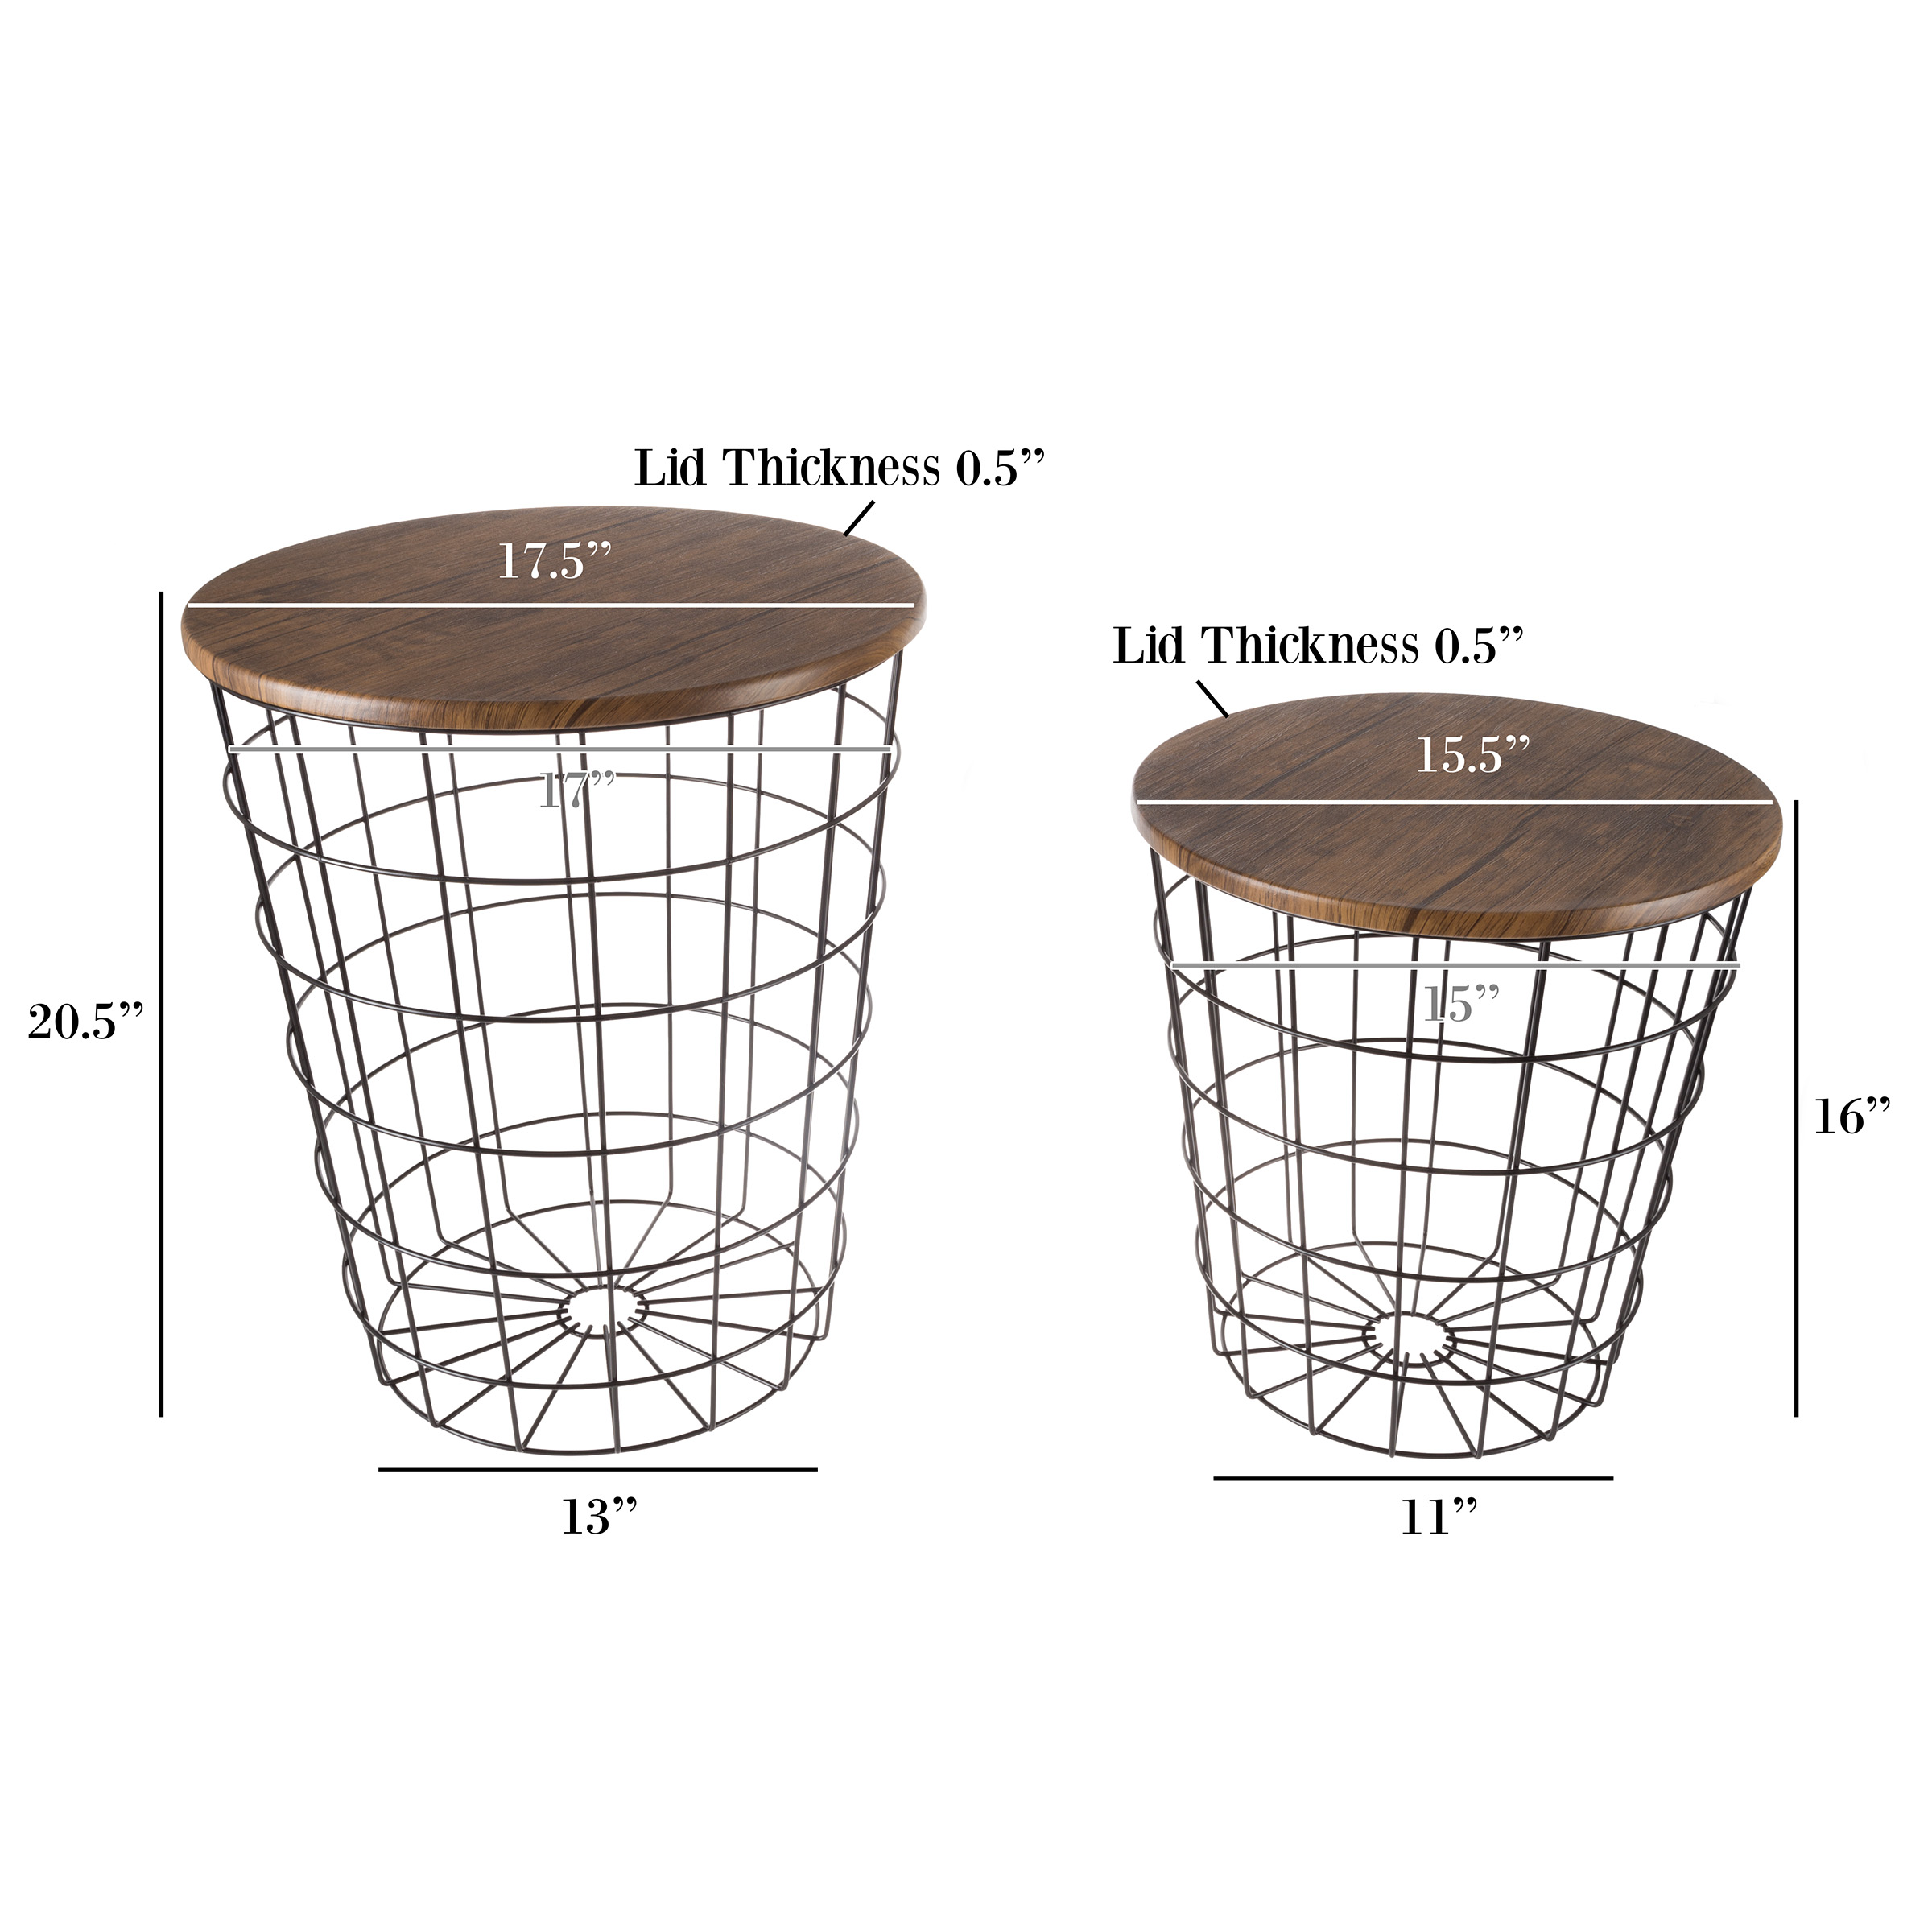 nesting end tables with storage set convertible round metal wire basket accent table veneer wood top side for home and office lavish black wide door threshold high patio all